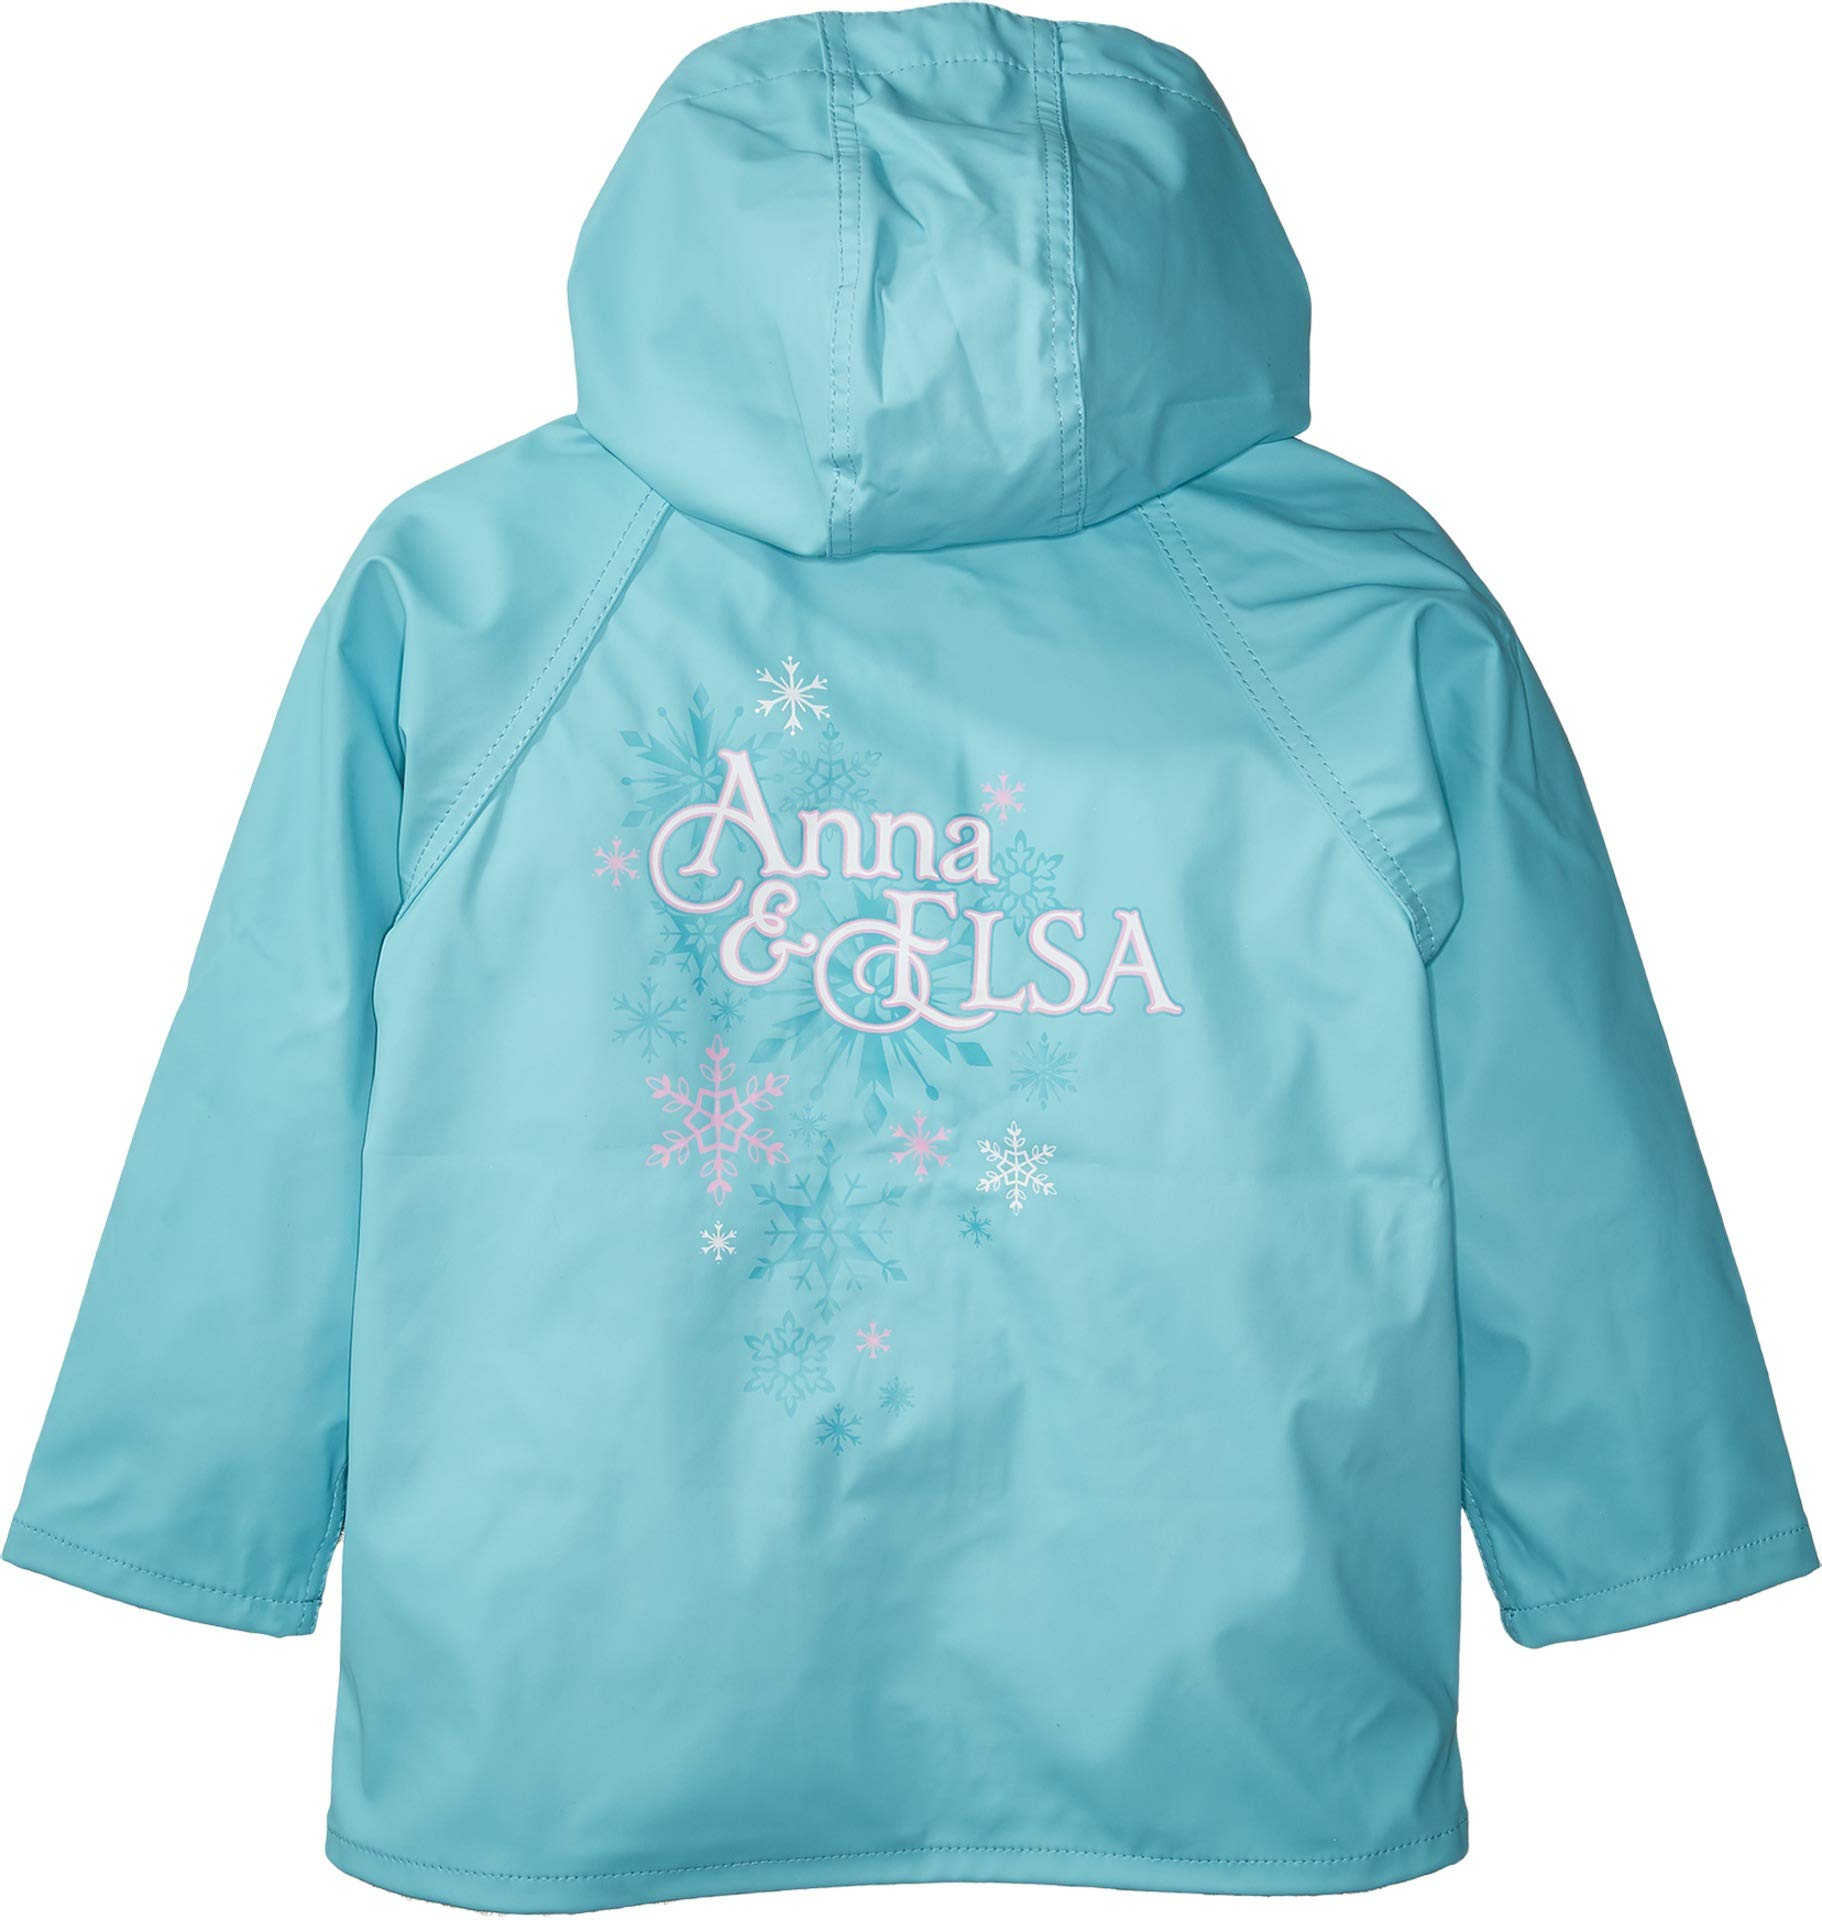 Western Chief Kids Frozen Rain Jacket, Blue, 5 by Western Chief (Image #2)